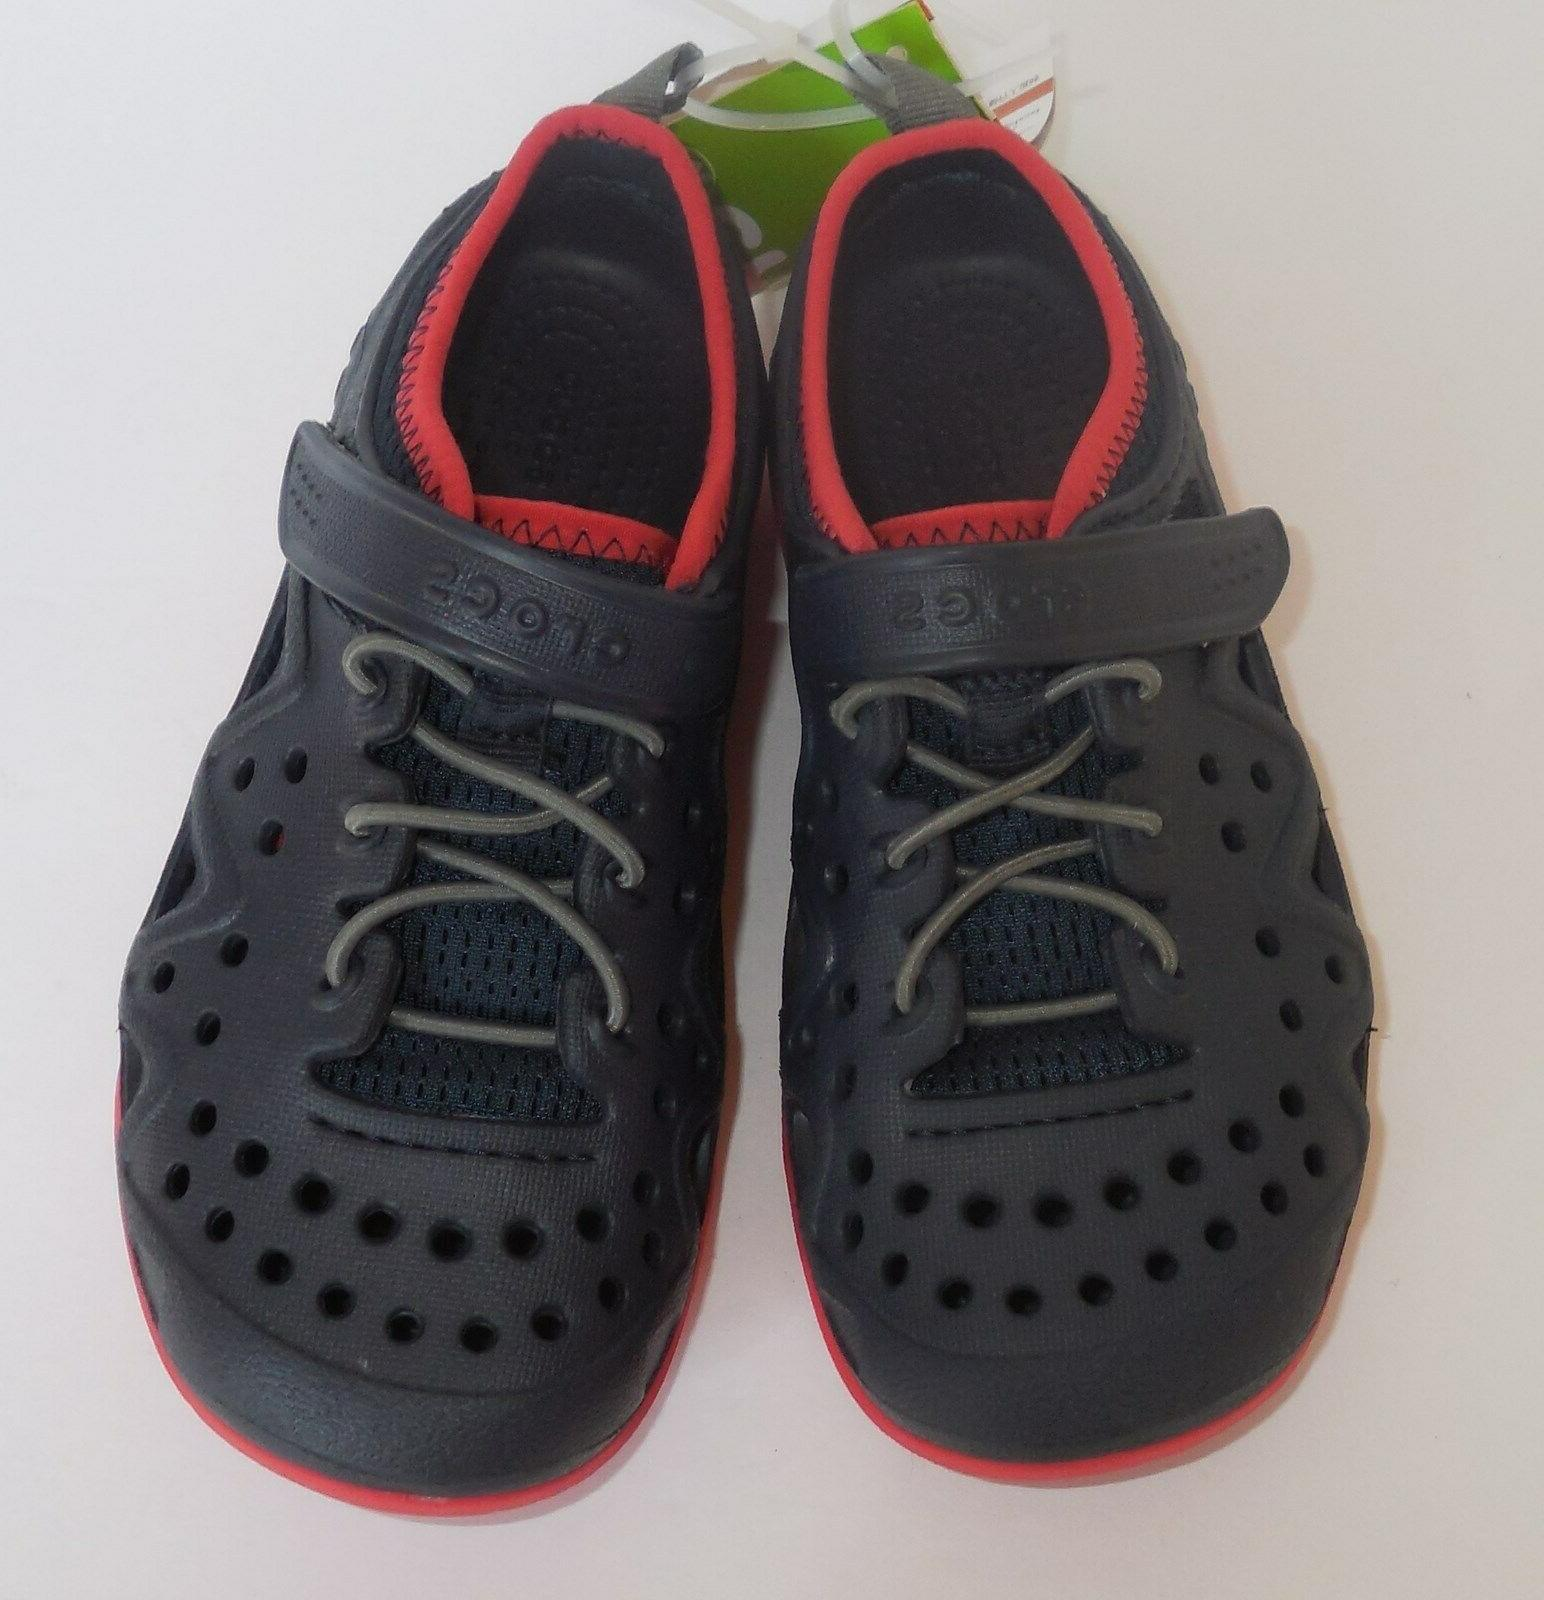 Crocs Swiftwater Play Shoes Boys C13 Navy Blue New 204989-410